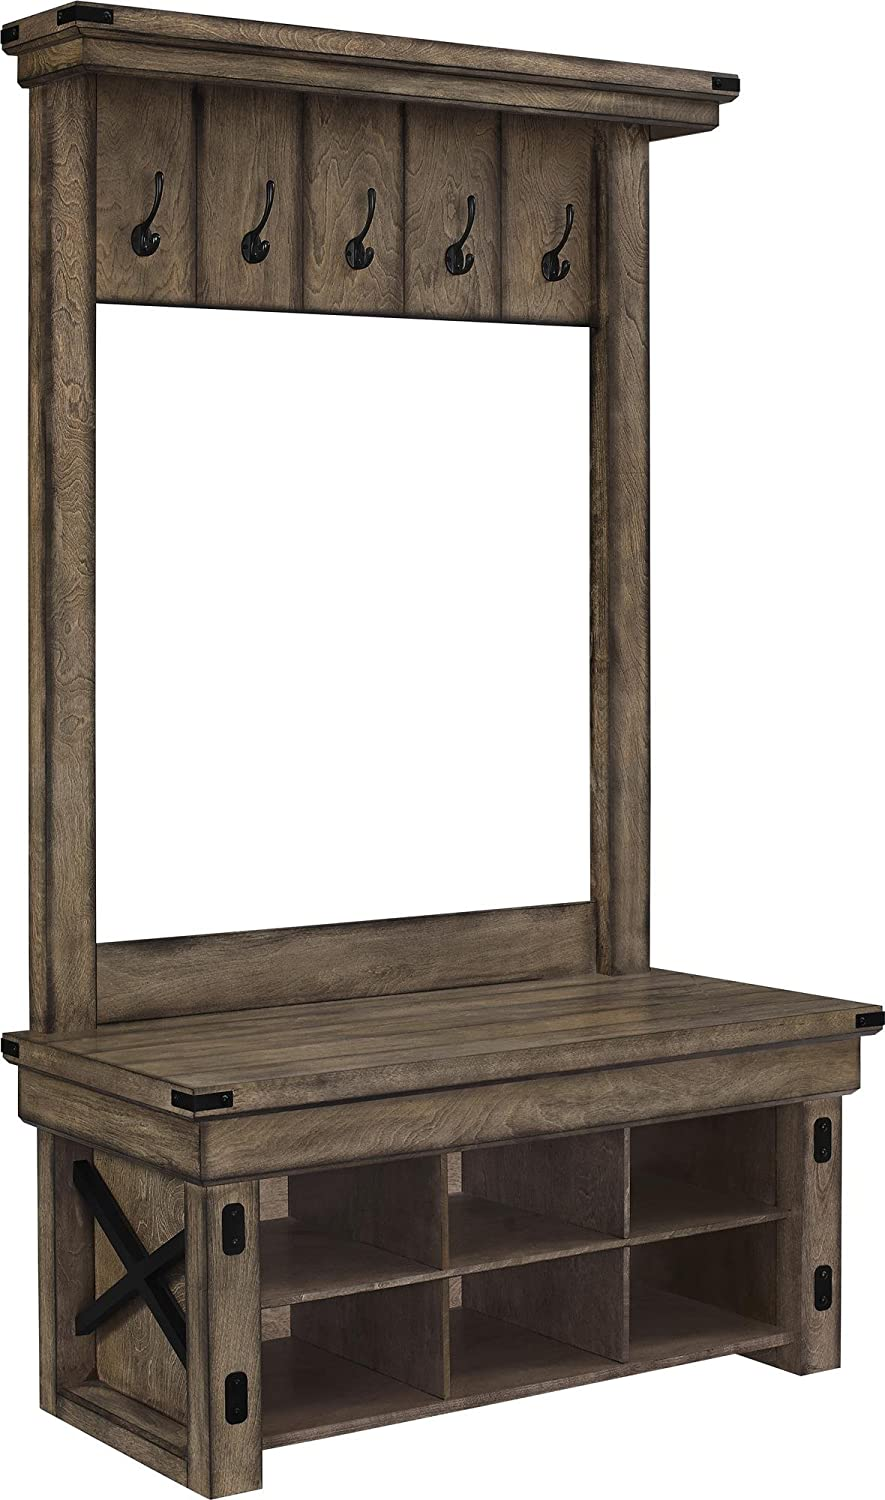 furniture for entryway. amazoncom altra furniture wildwood wood veneer entryway hall tree with storage bench rustic gray kitchen u0026 dining for